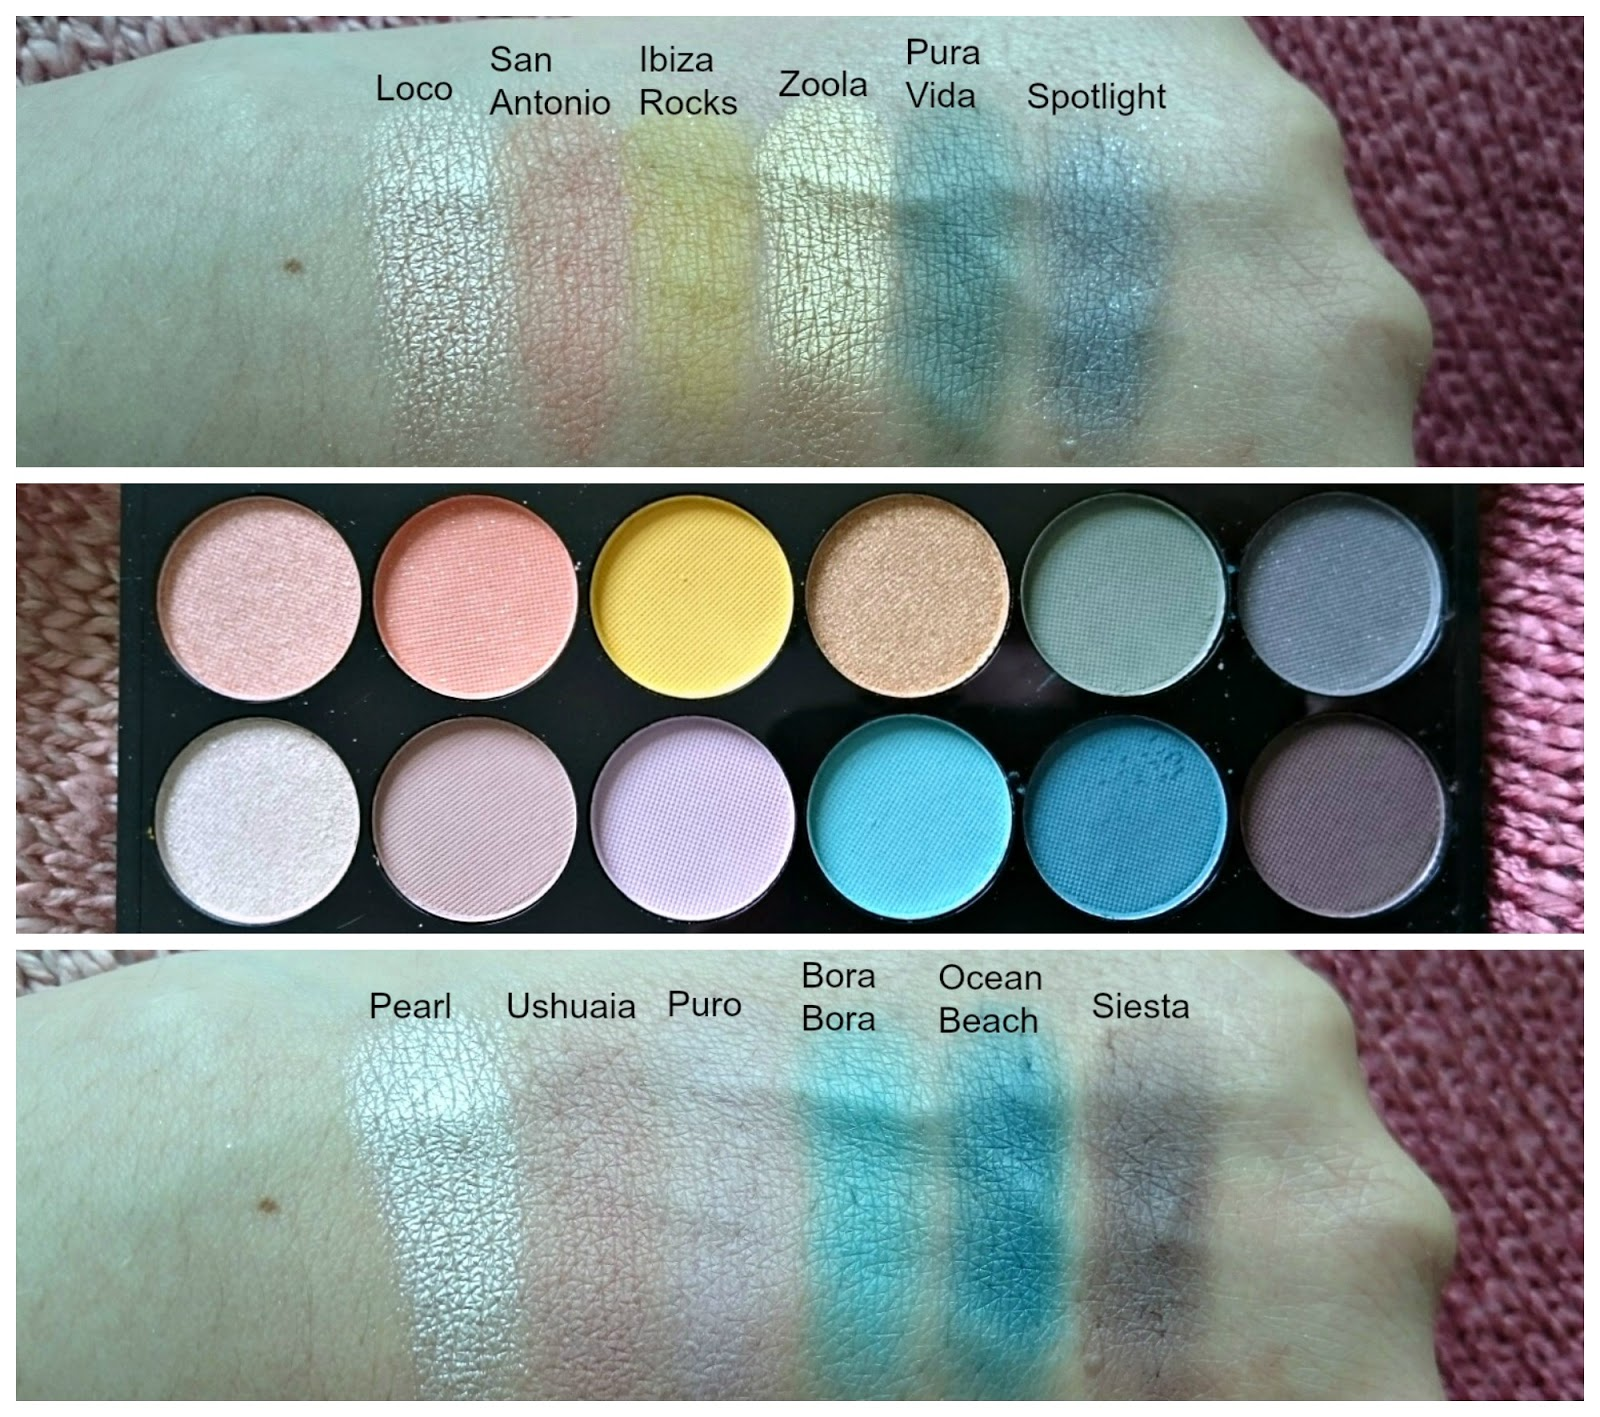 Sleek Del Mar vol.II palette-swatches